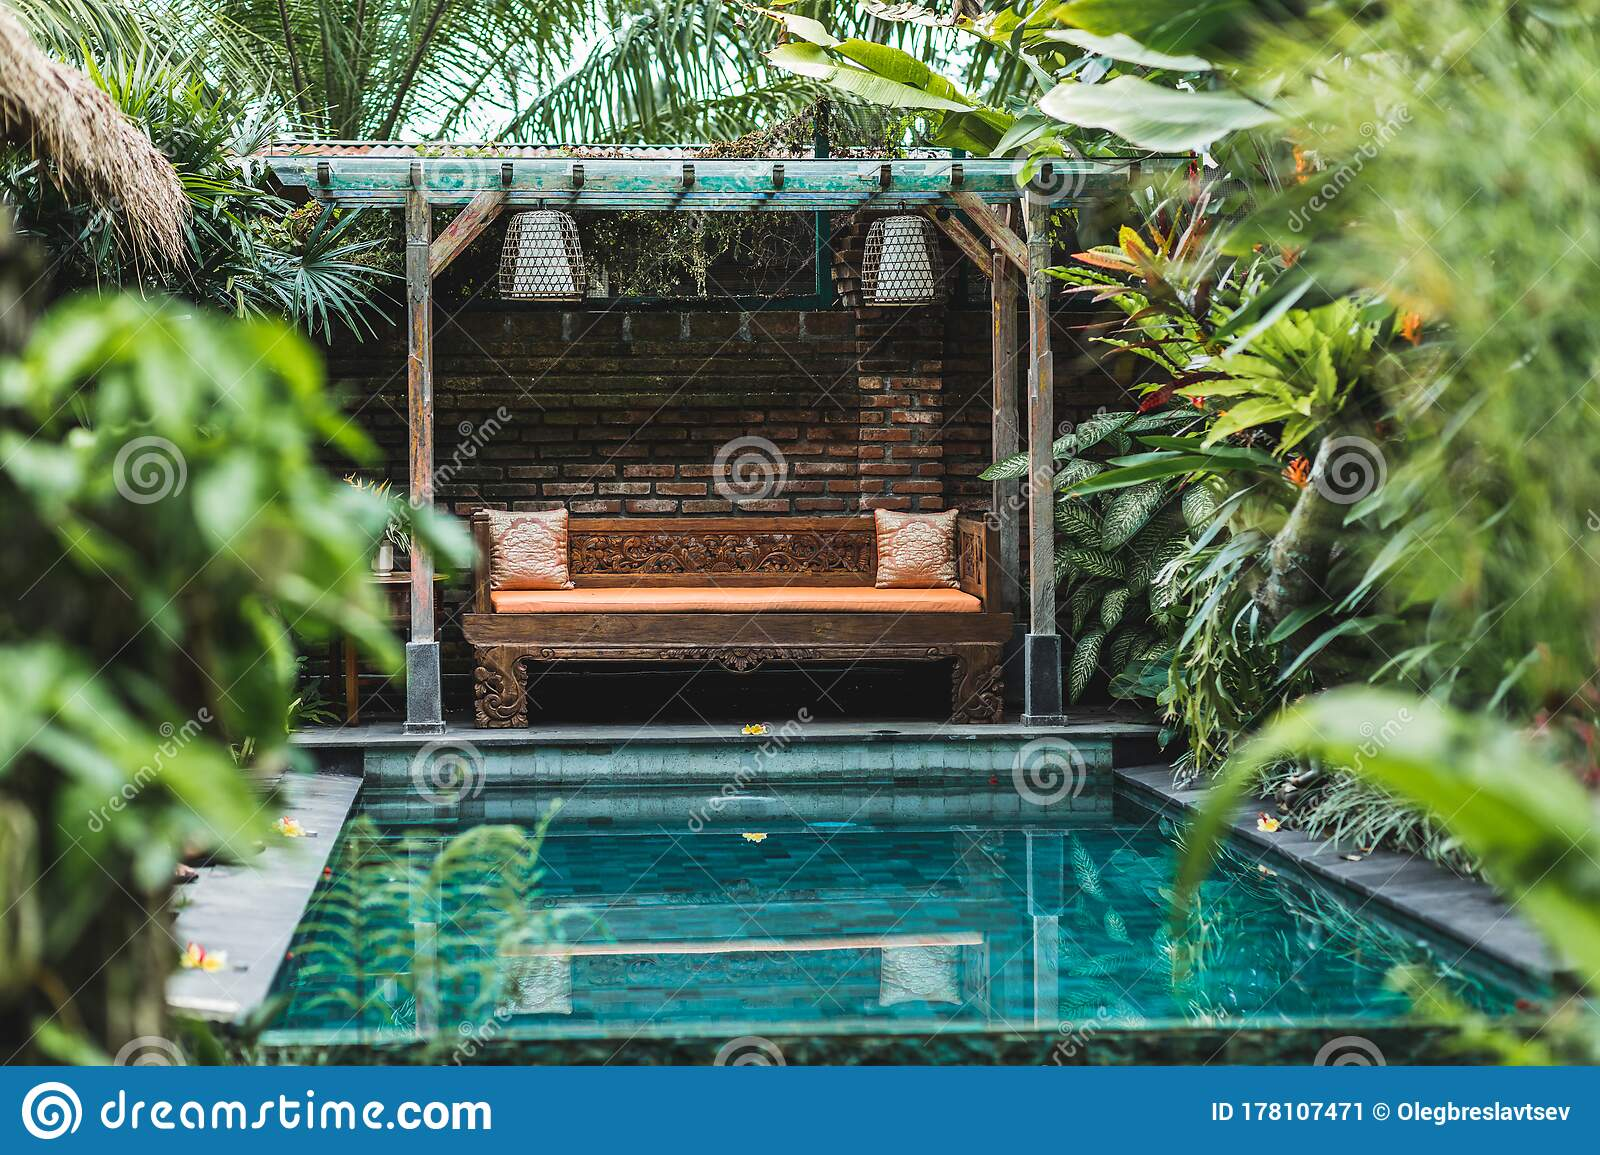 1 170 Small Swimming Pool House Photos Free Royalty Free Stock Photos From Dreamstime